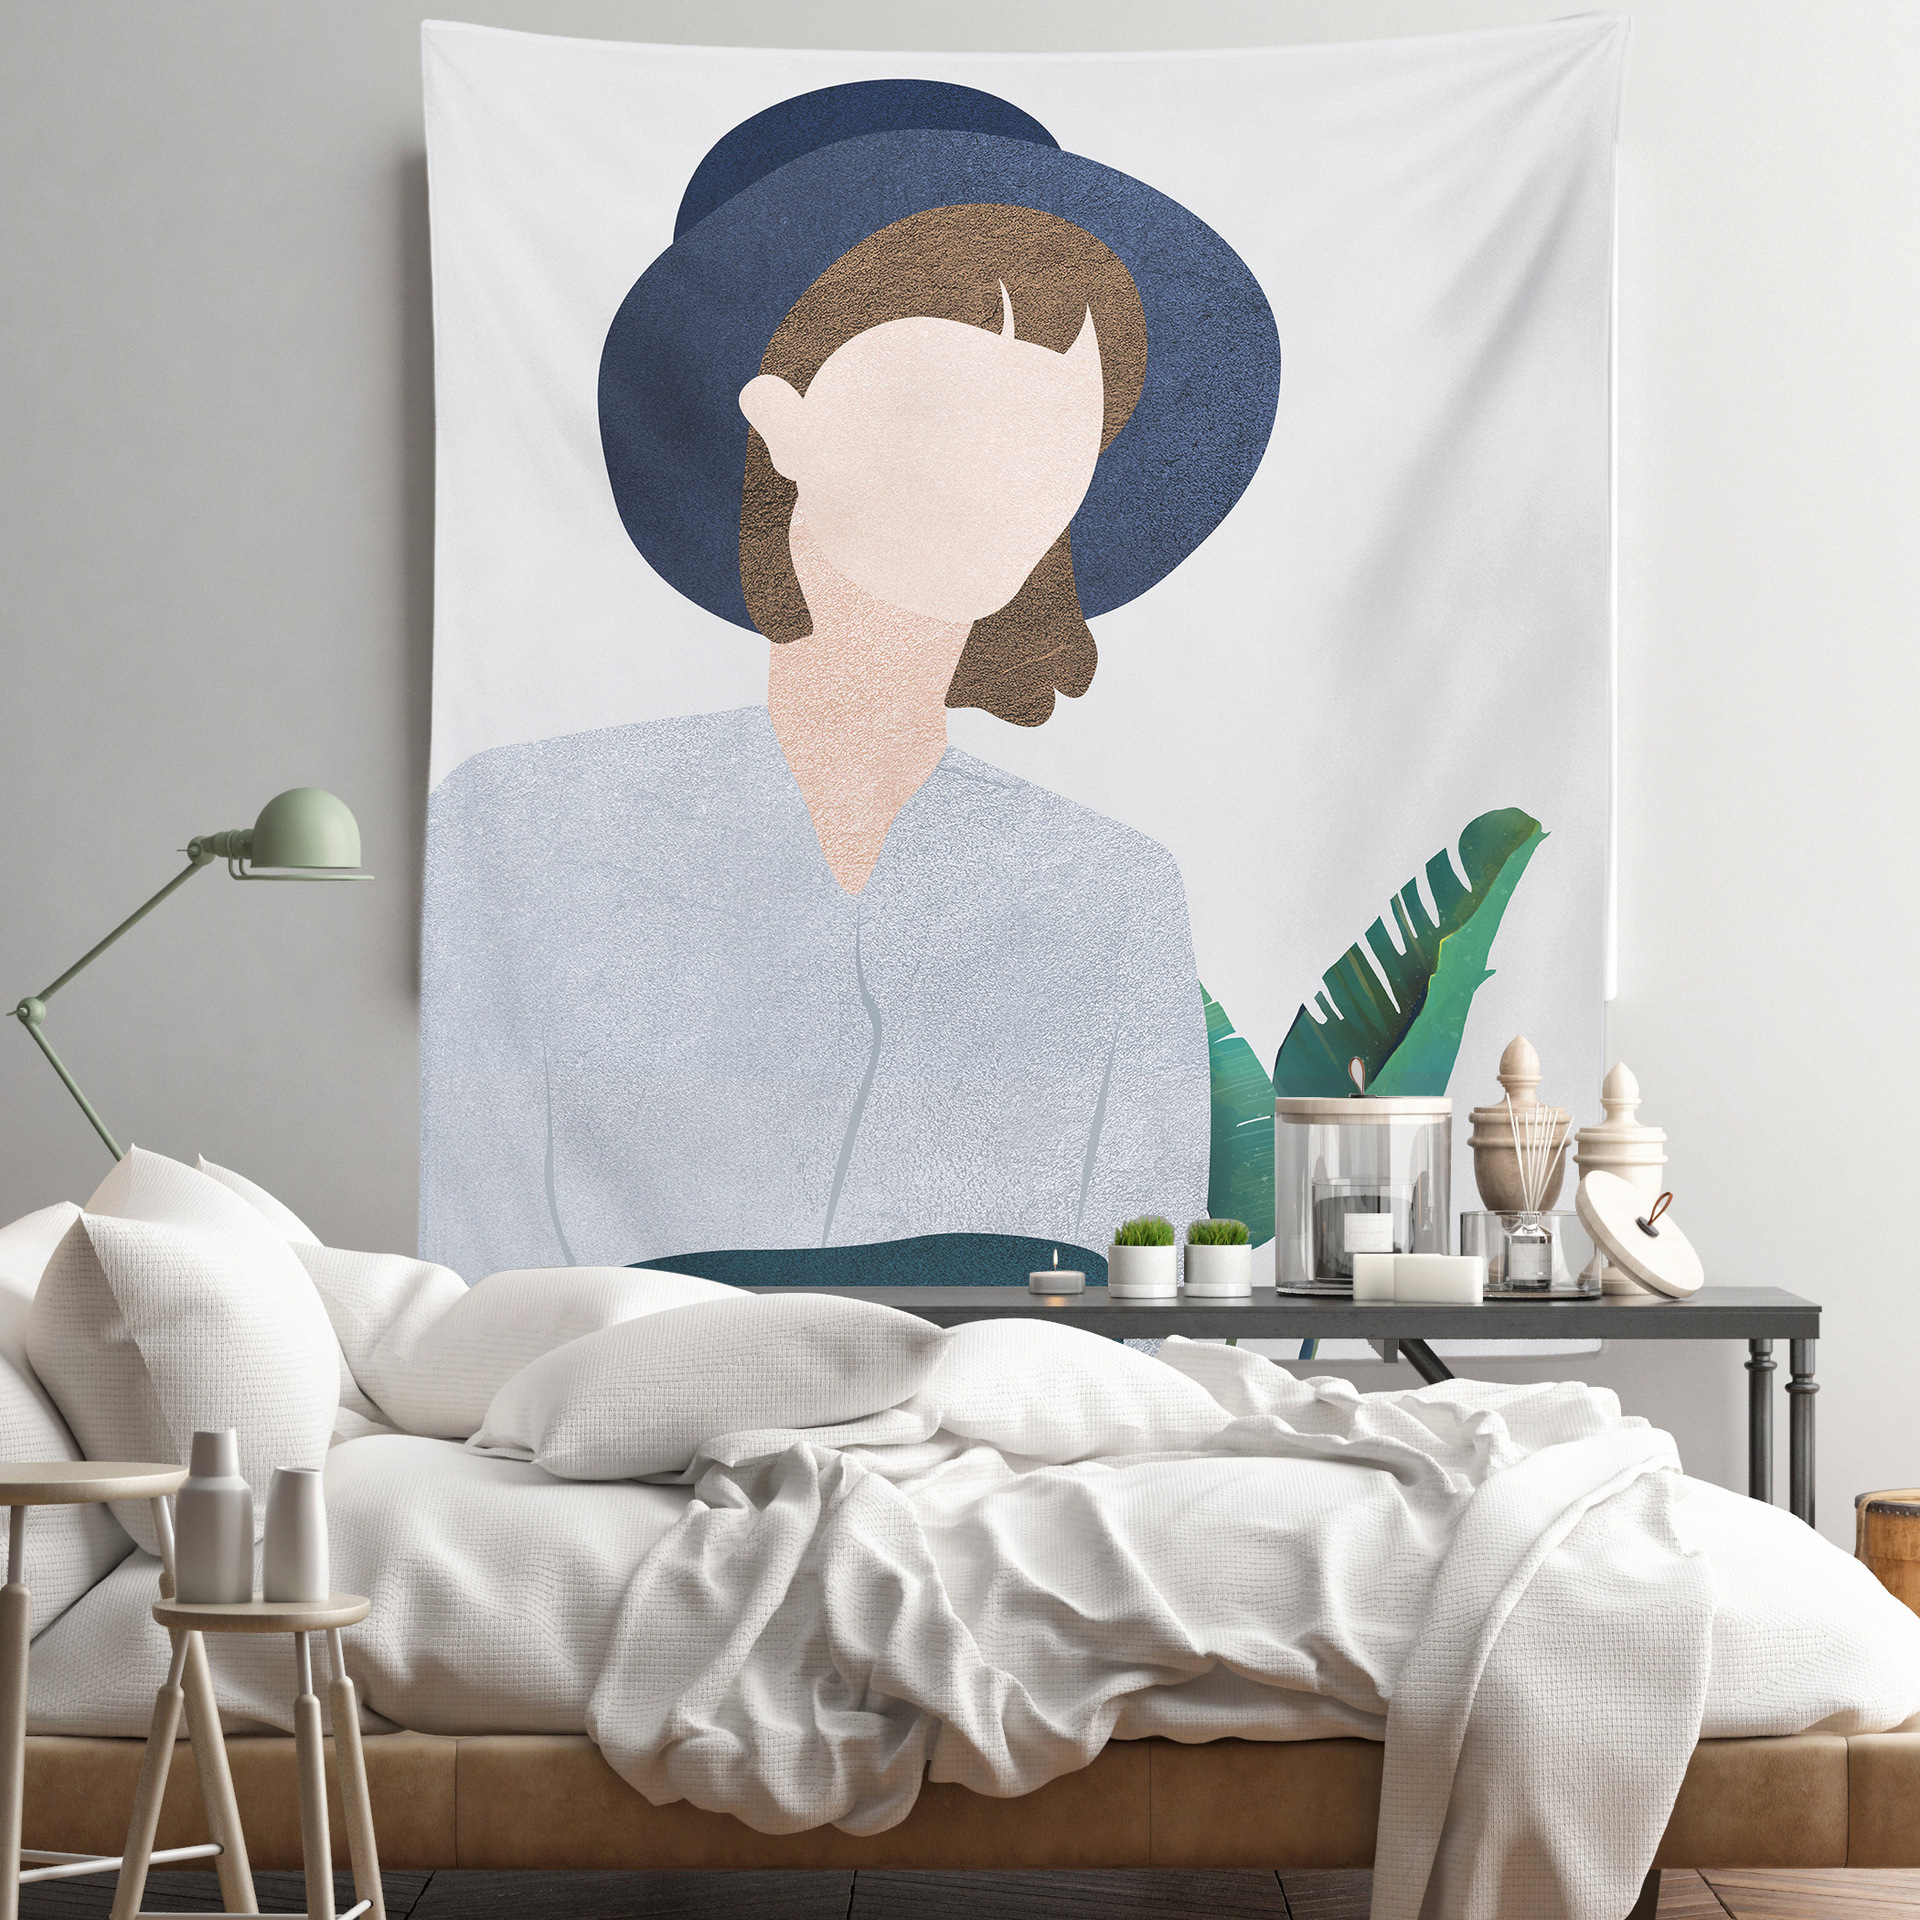 Aesthetic Hanging Painting Background Decoration for Bedroom Wall Art